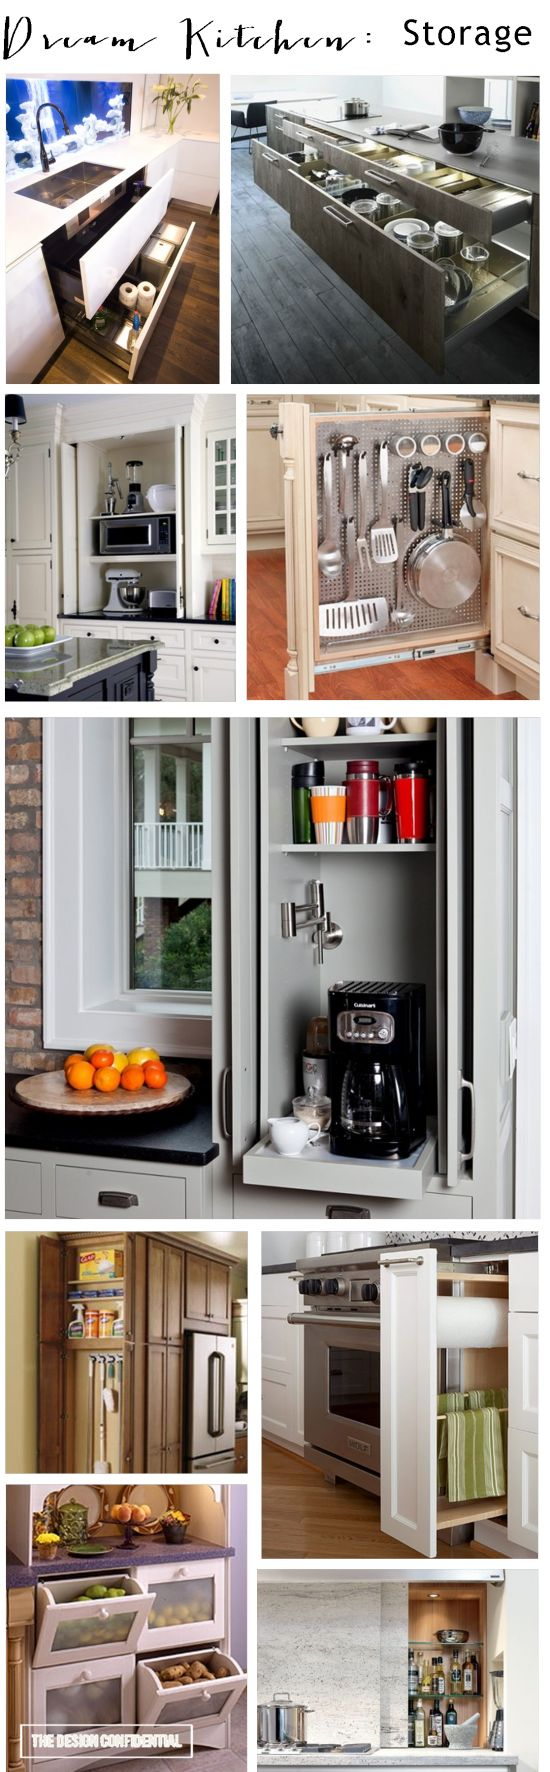 40 Storage Ideas That Will Enlarge Your Space (29)